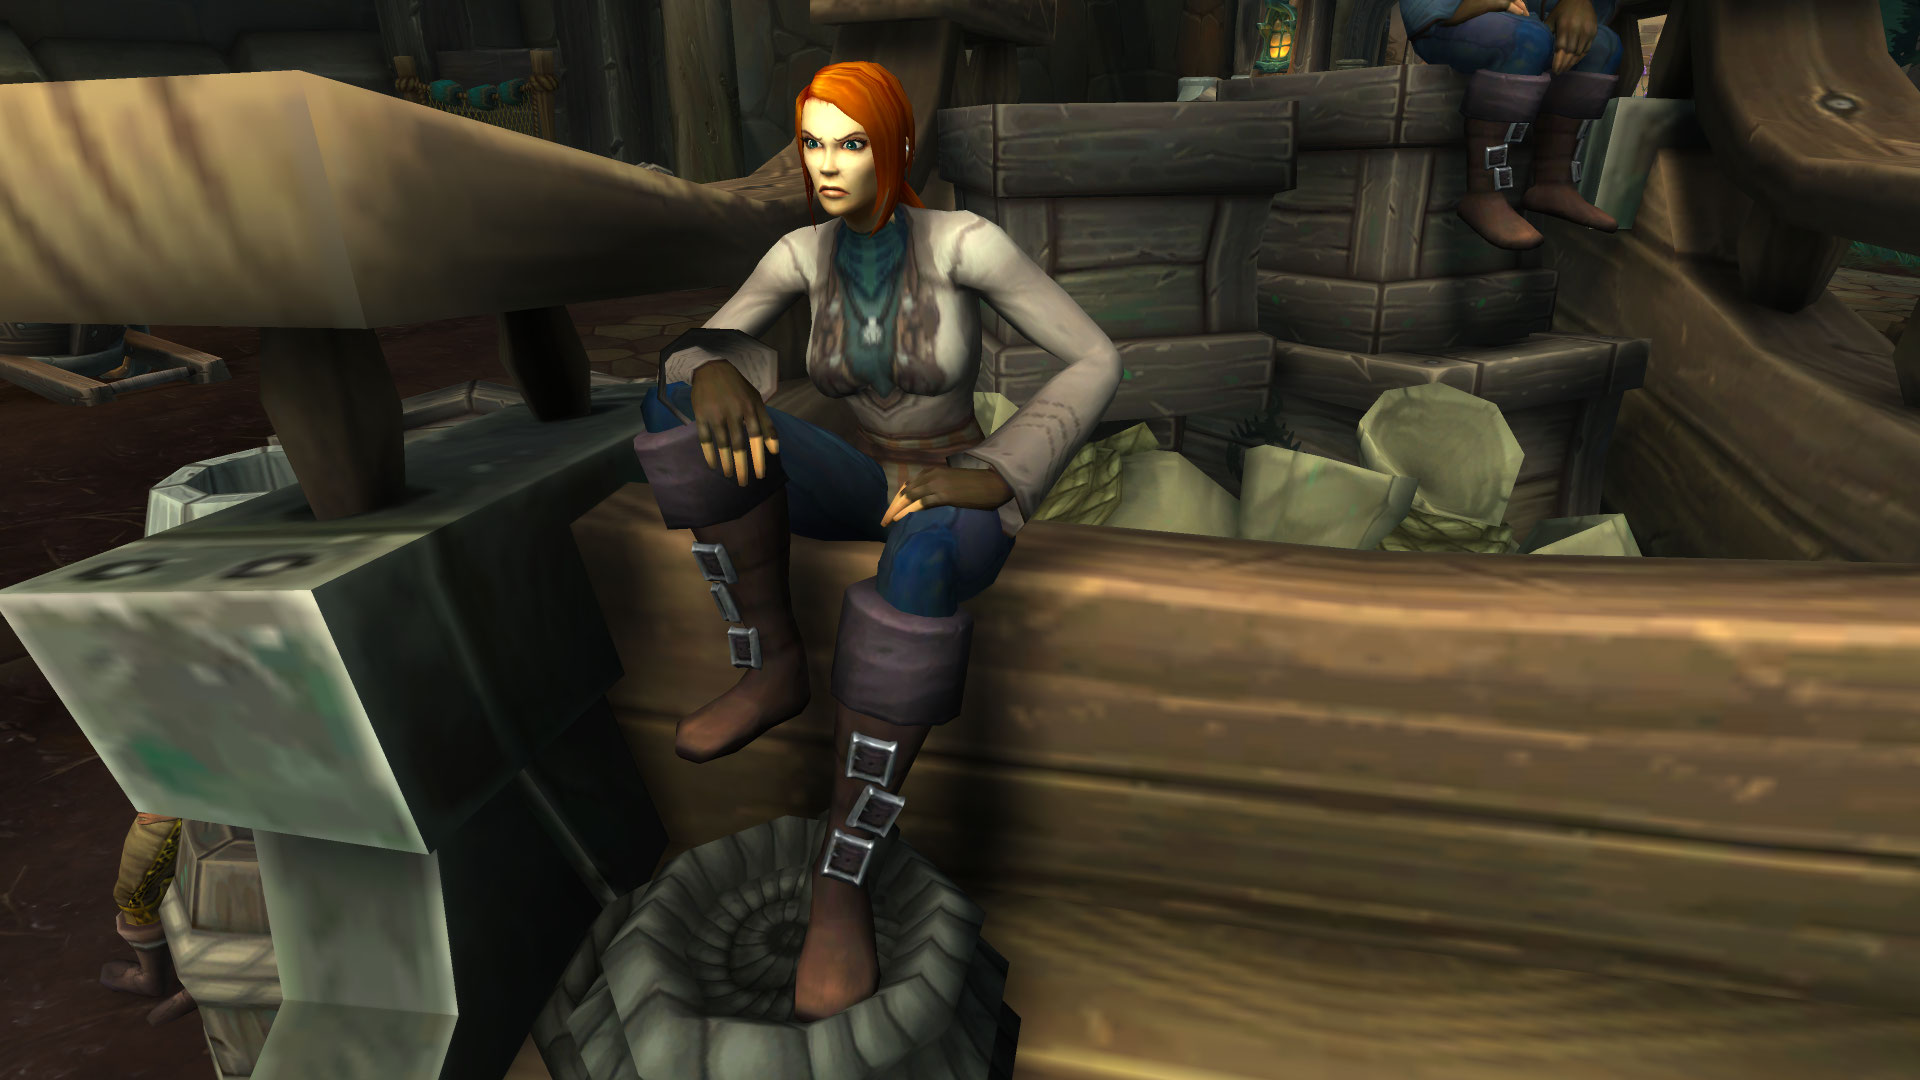 WoW BfA Chilling Sit Pose